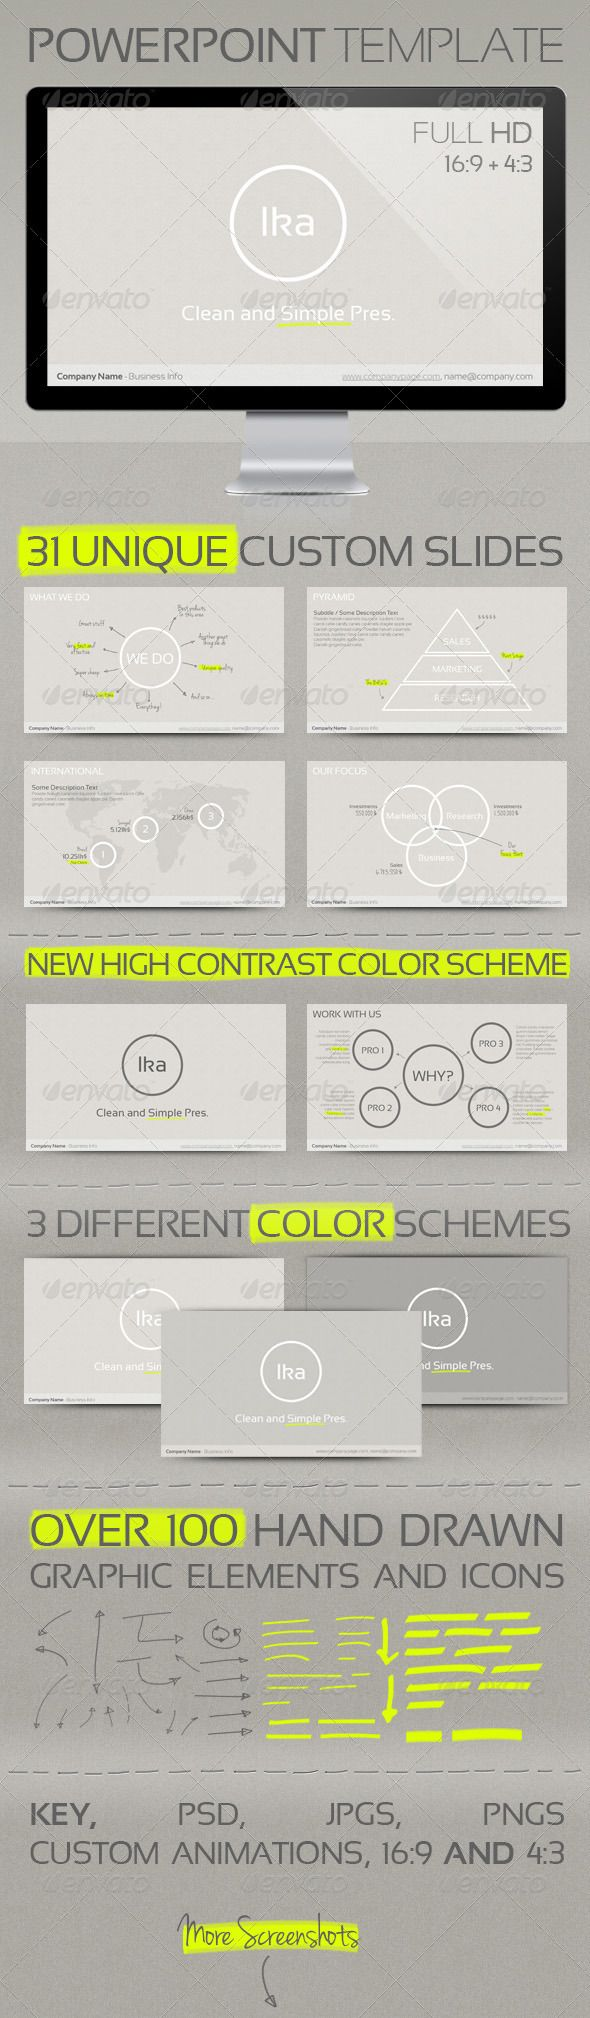 Presentation Templates - Ika - Clean and Simple Presenation Template | GraphicRiver